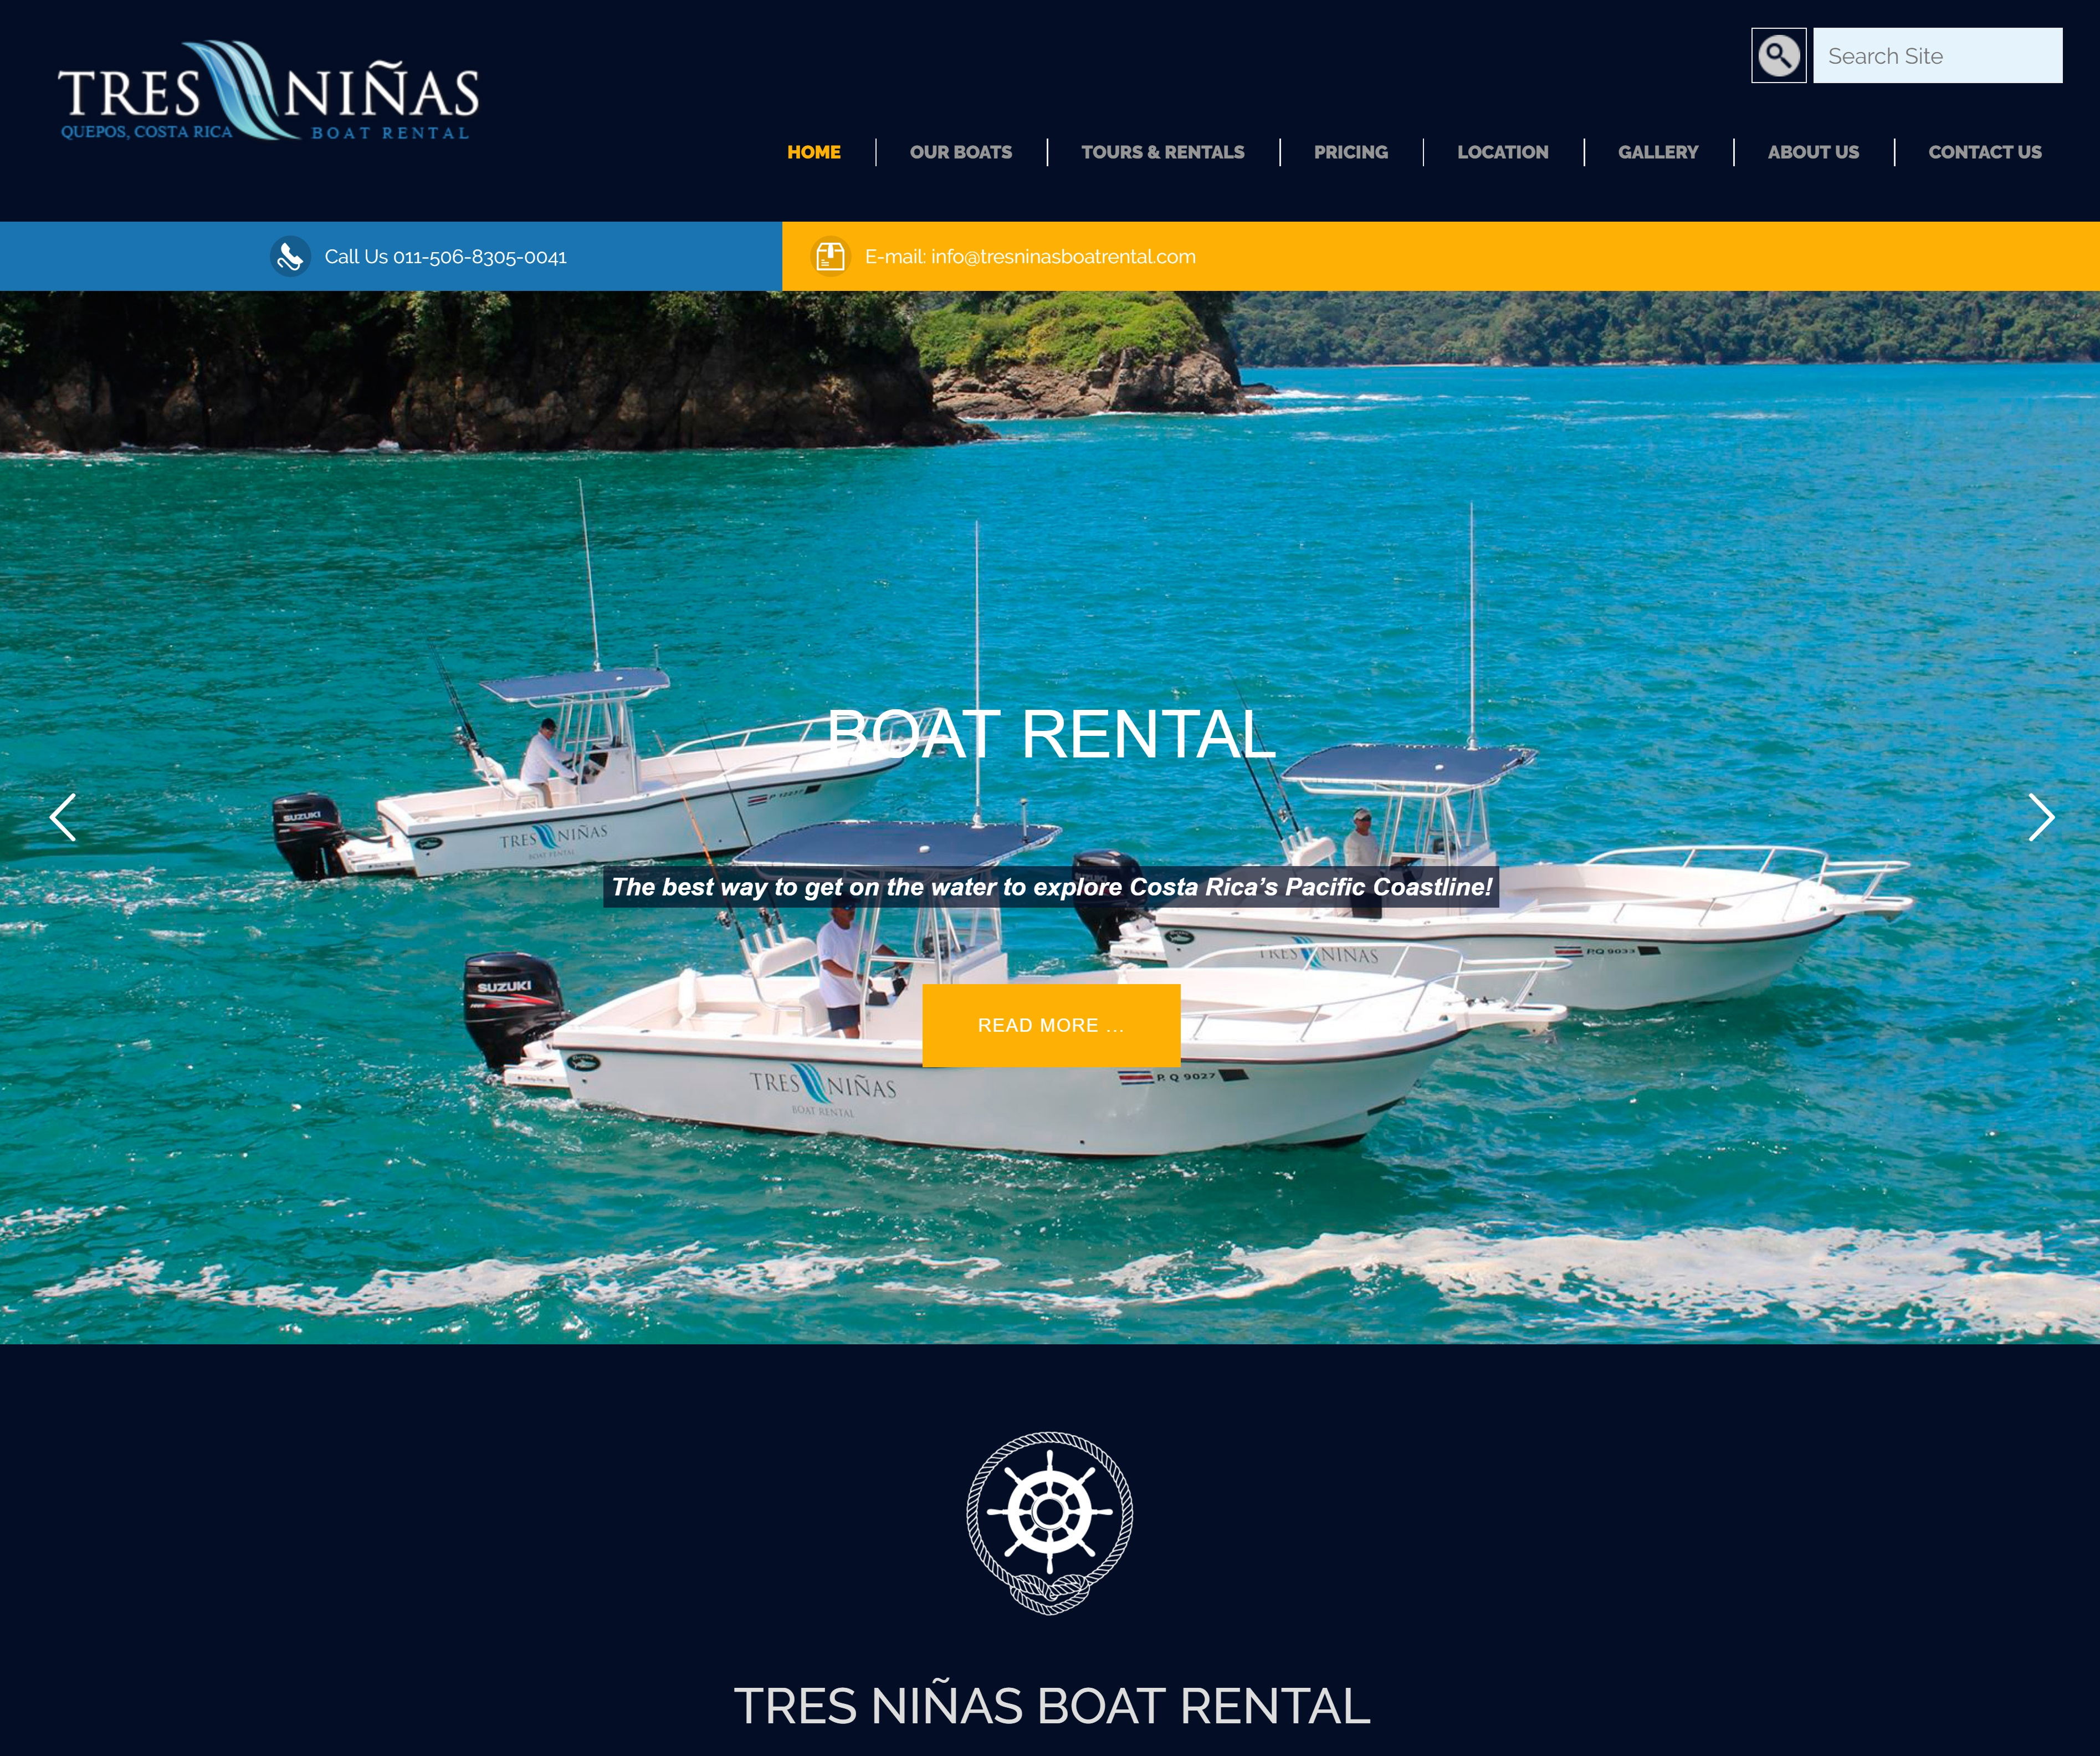 tres-ninas-boat-rental-manuel-antonio-boat-rentals-first-and-only-boat-rental-company-in-costa-rica